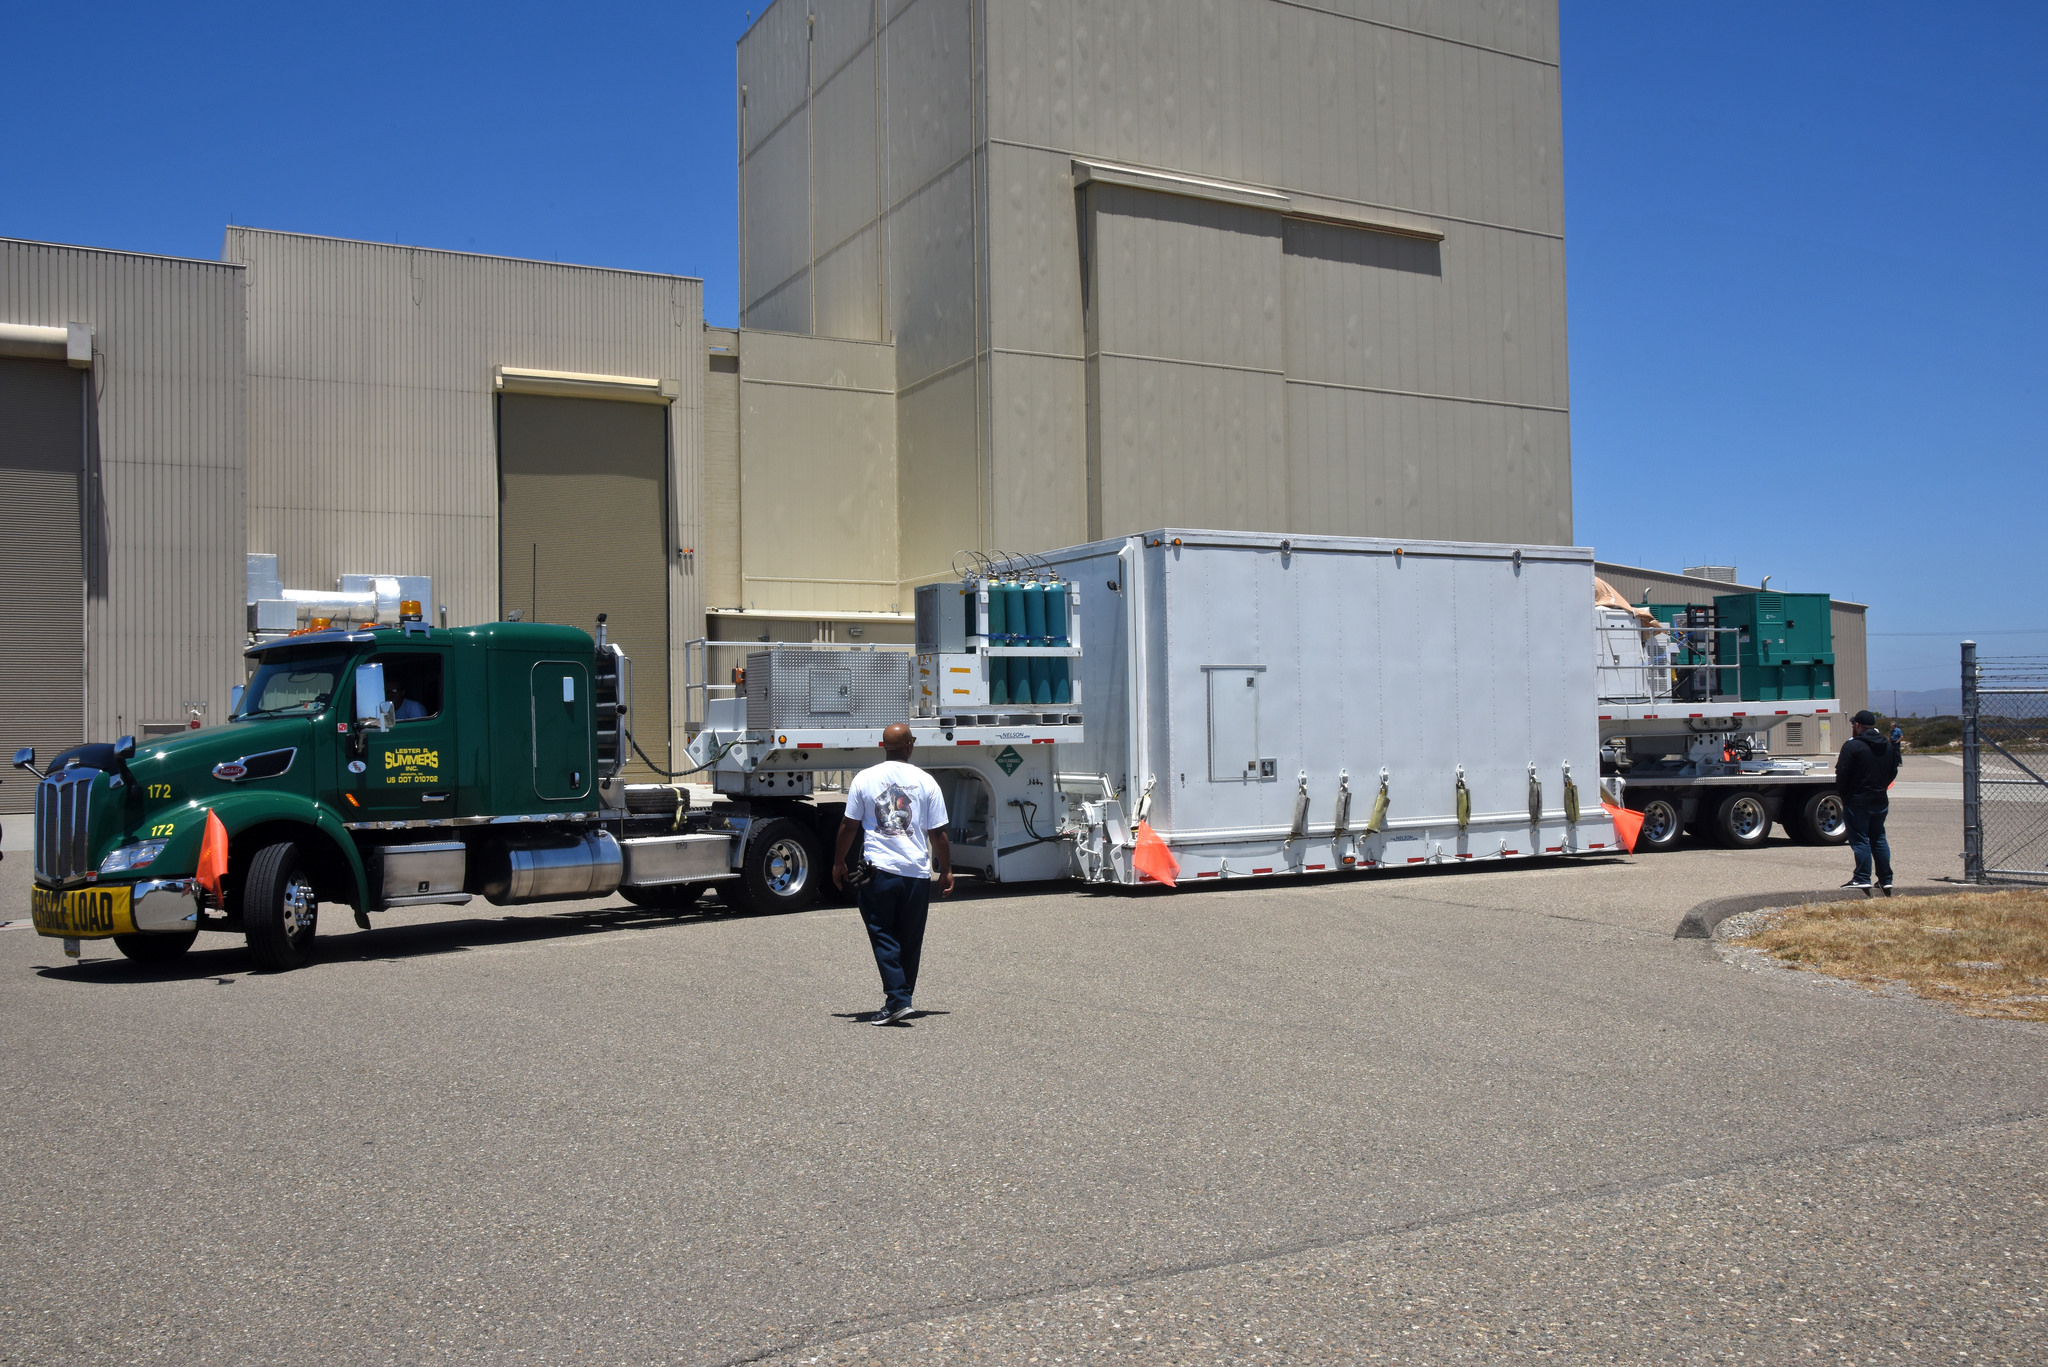 ICESat-2 arrives at Vandenberg Air Force Base in California.